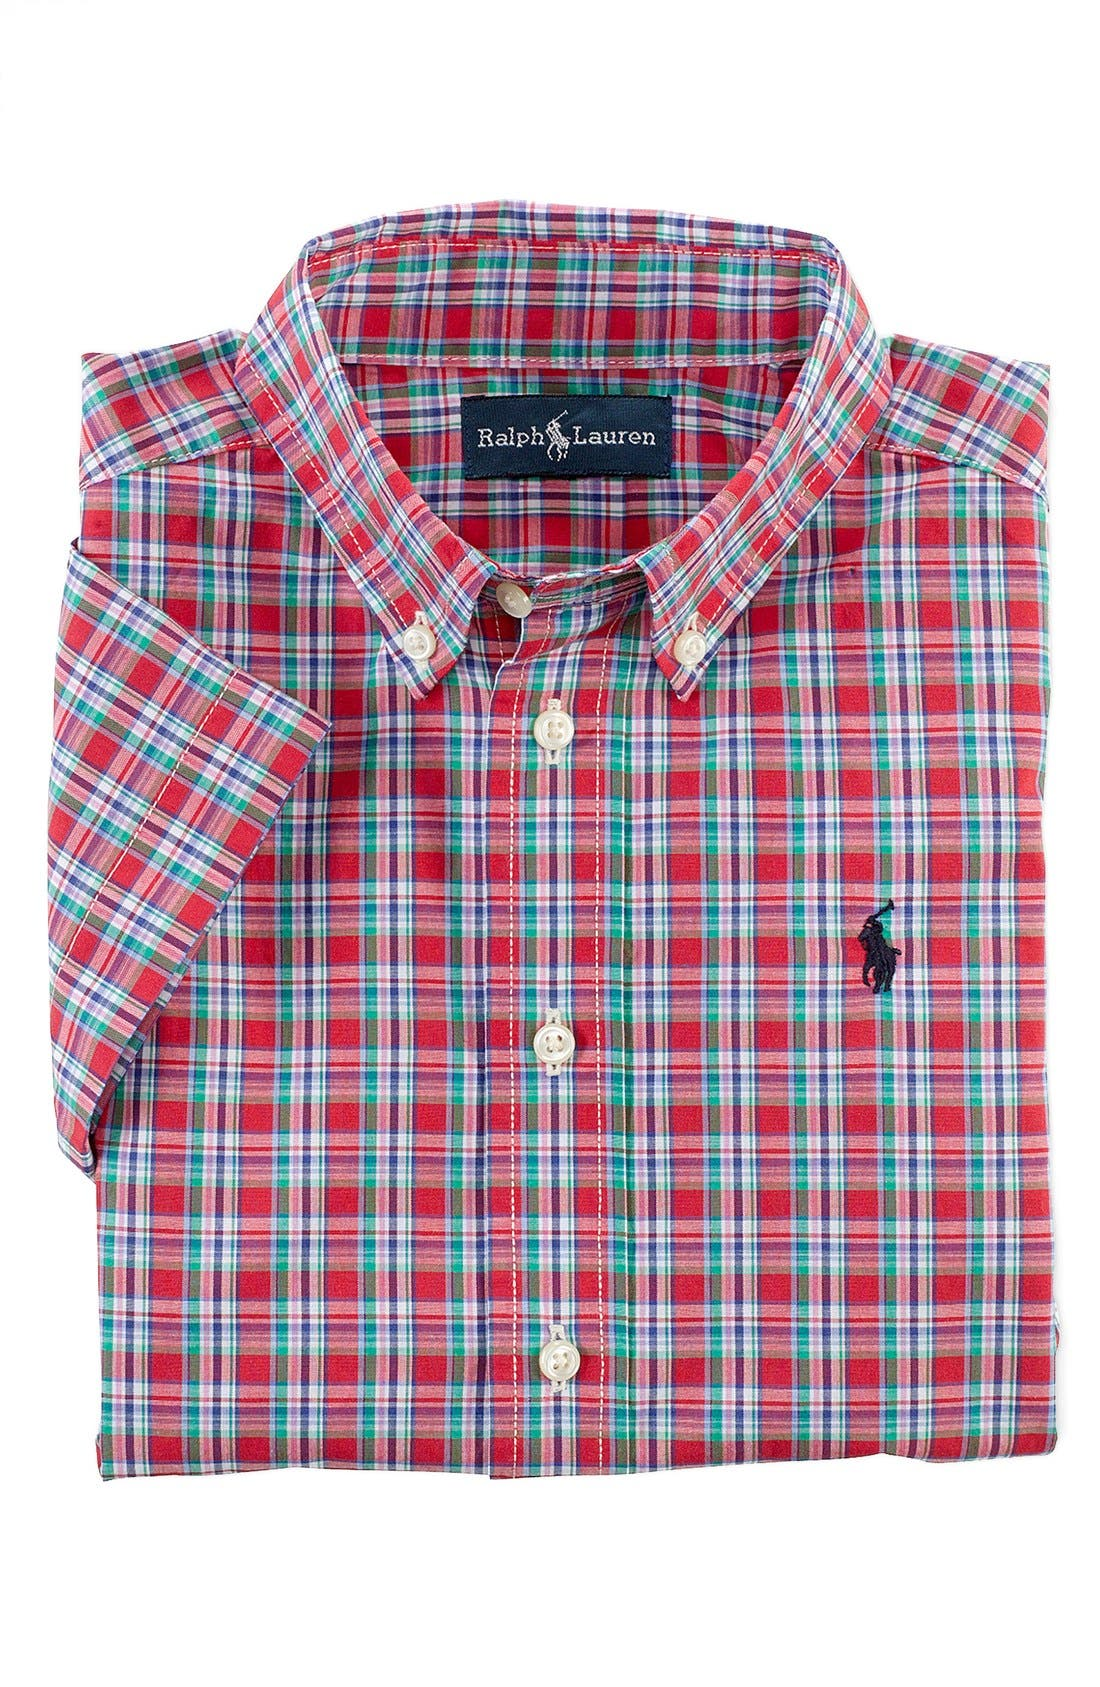 Alternate Image 1 Selected - Ralph Lauren Woven Plaid Shirt (Toddler Boys)